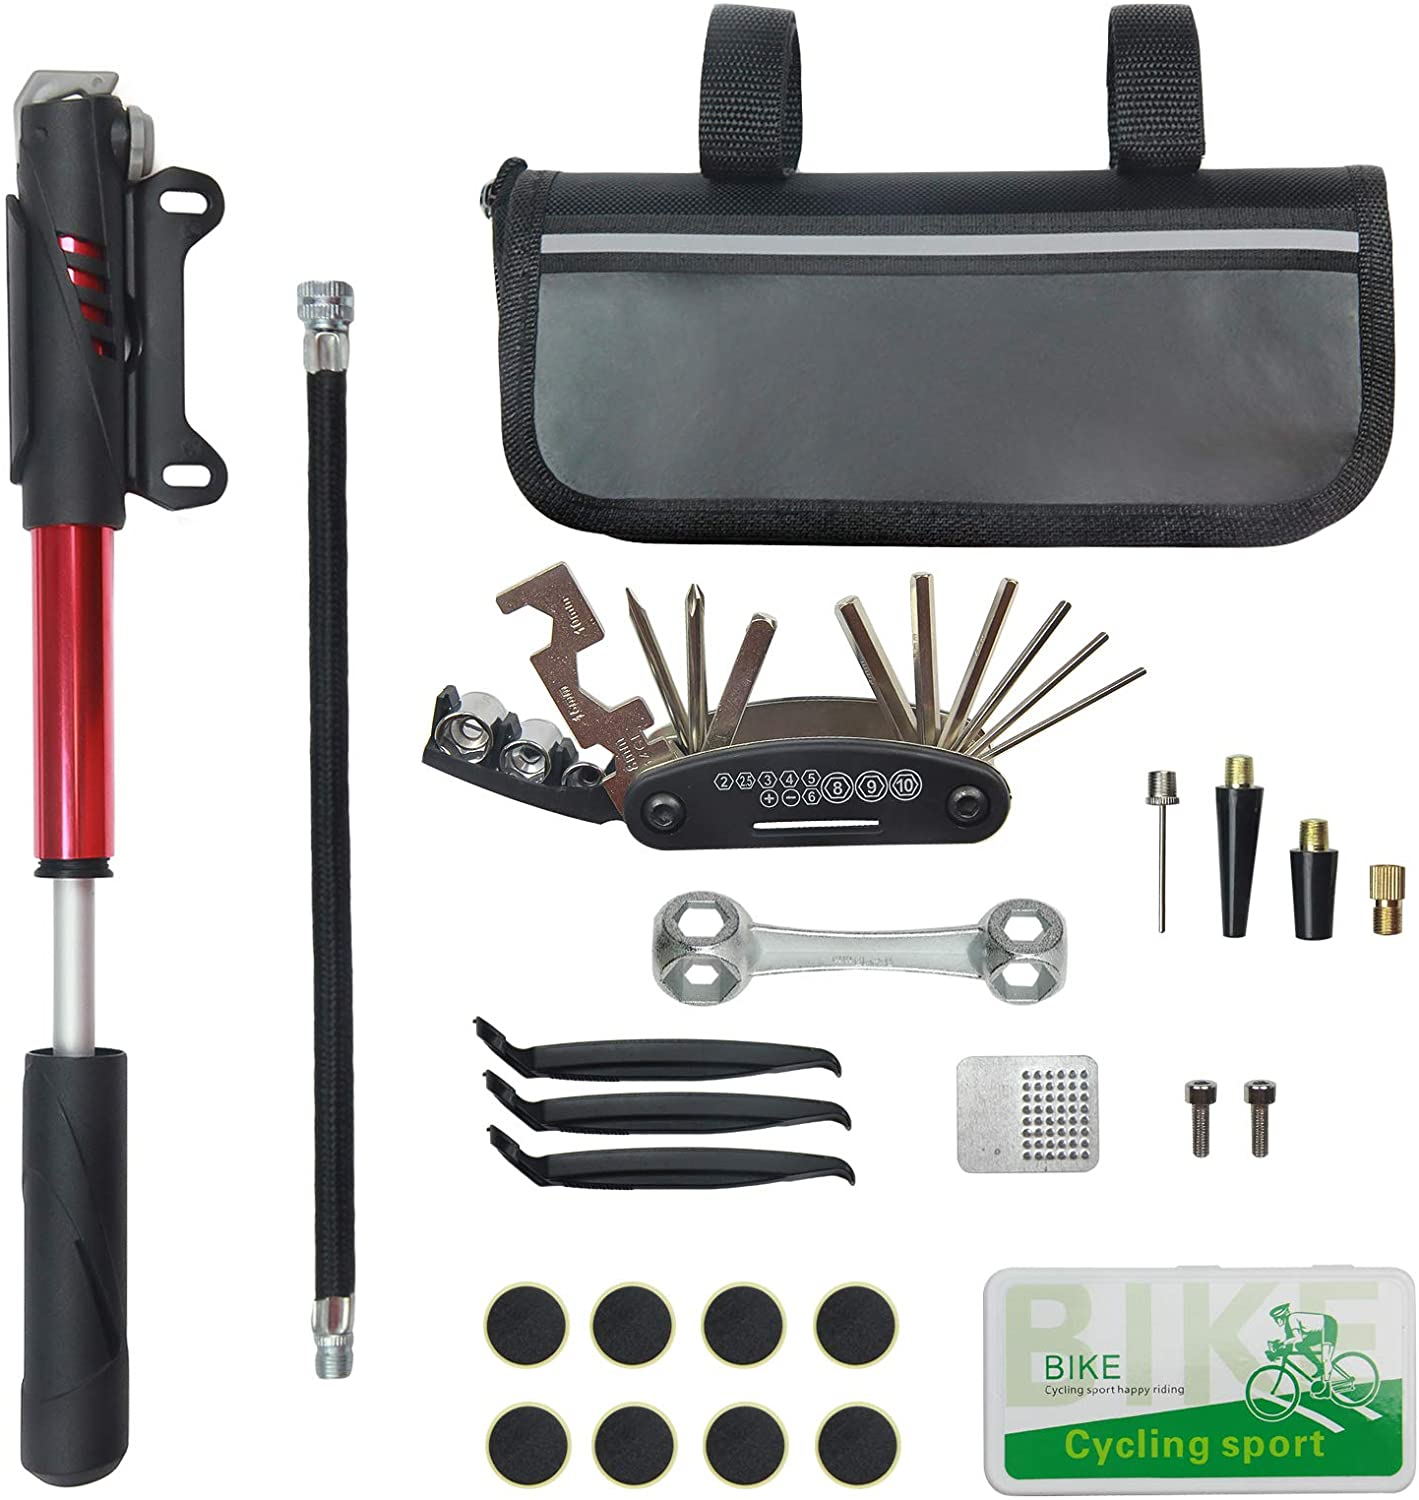 Bicycle Repair Set Flick Stuff 7 Pieces Incl 2 Tyre Levers Tire Patch Flicks